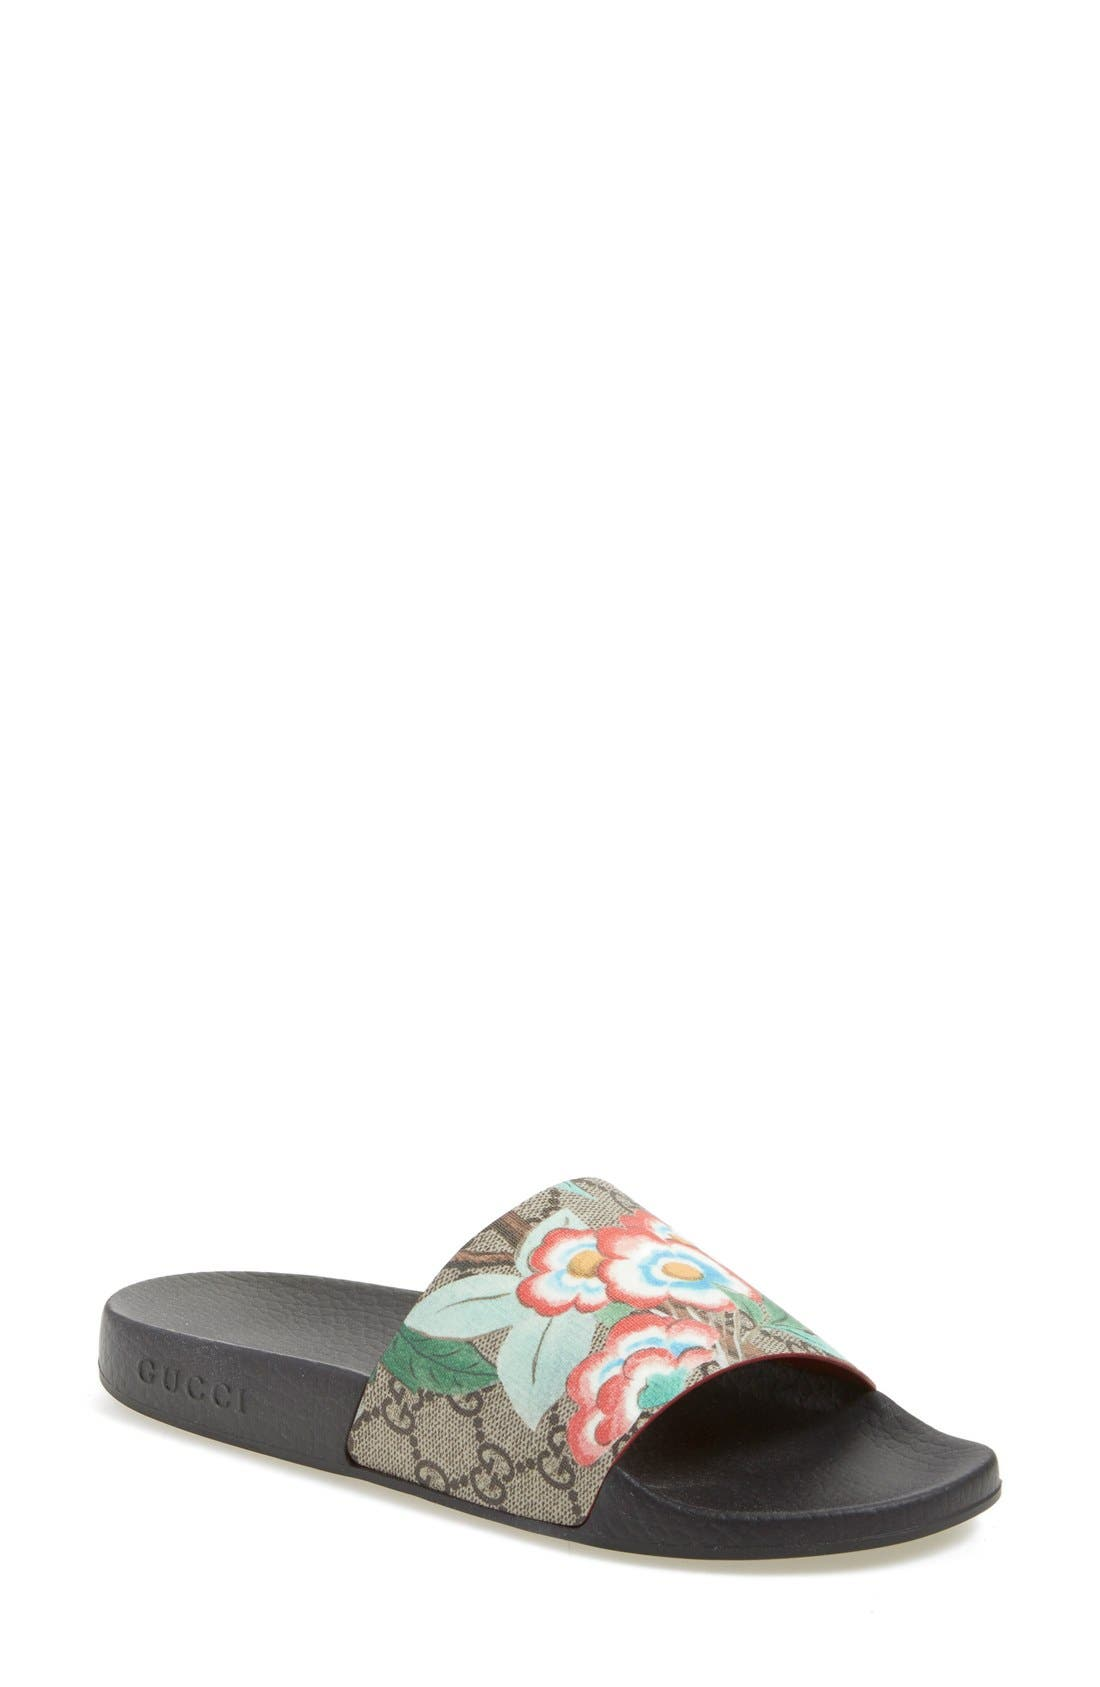 Pursuit Floral Logo Slide Sandal,                             Main thumbnail 1, color,                             283